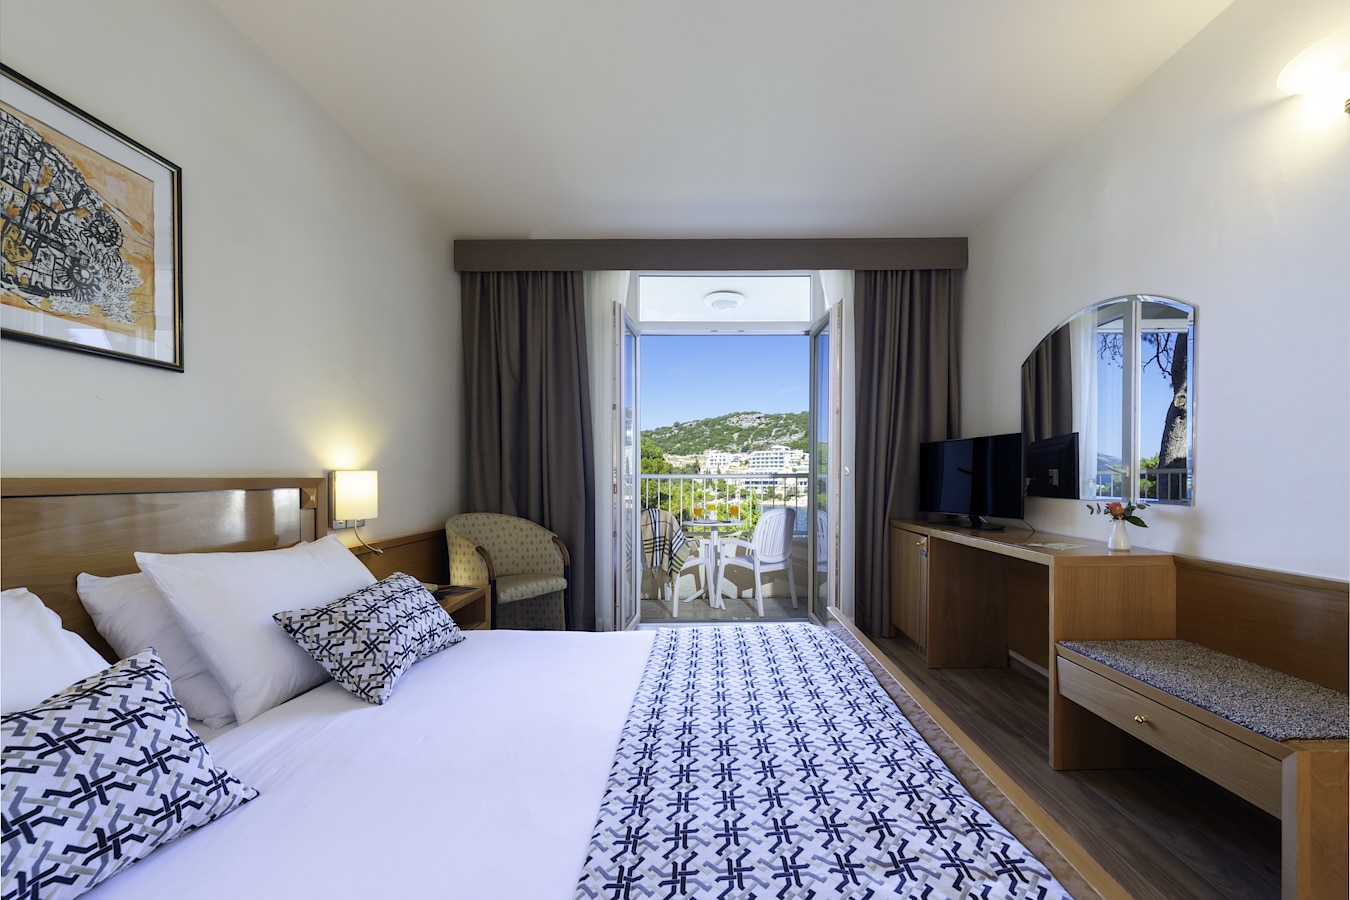 splendid-hotel-dubrovnik-double-room-sea-view-balcony.jpg